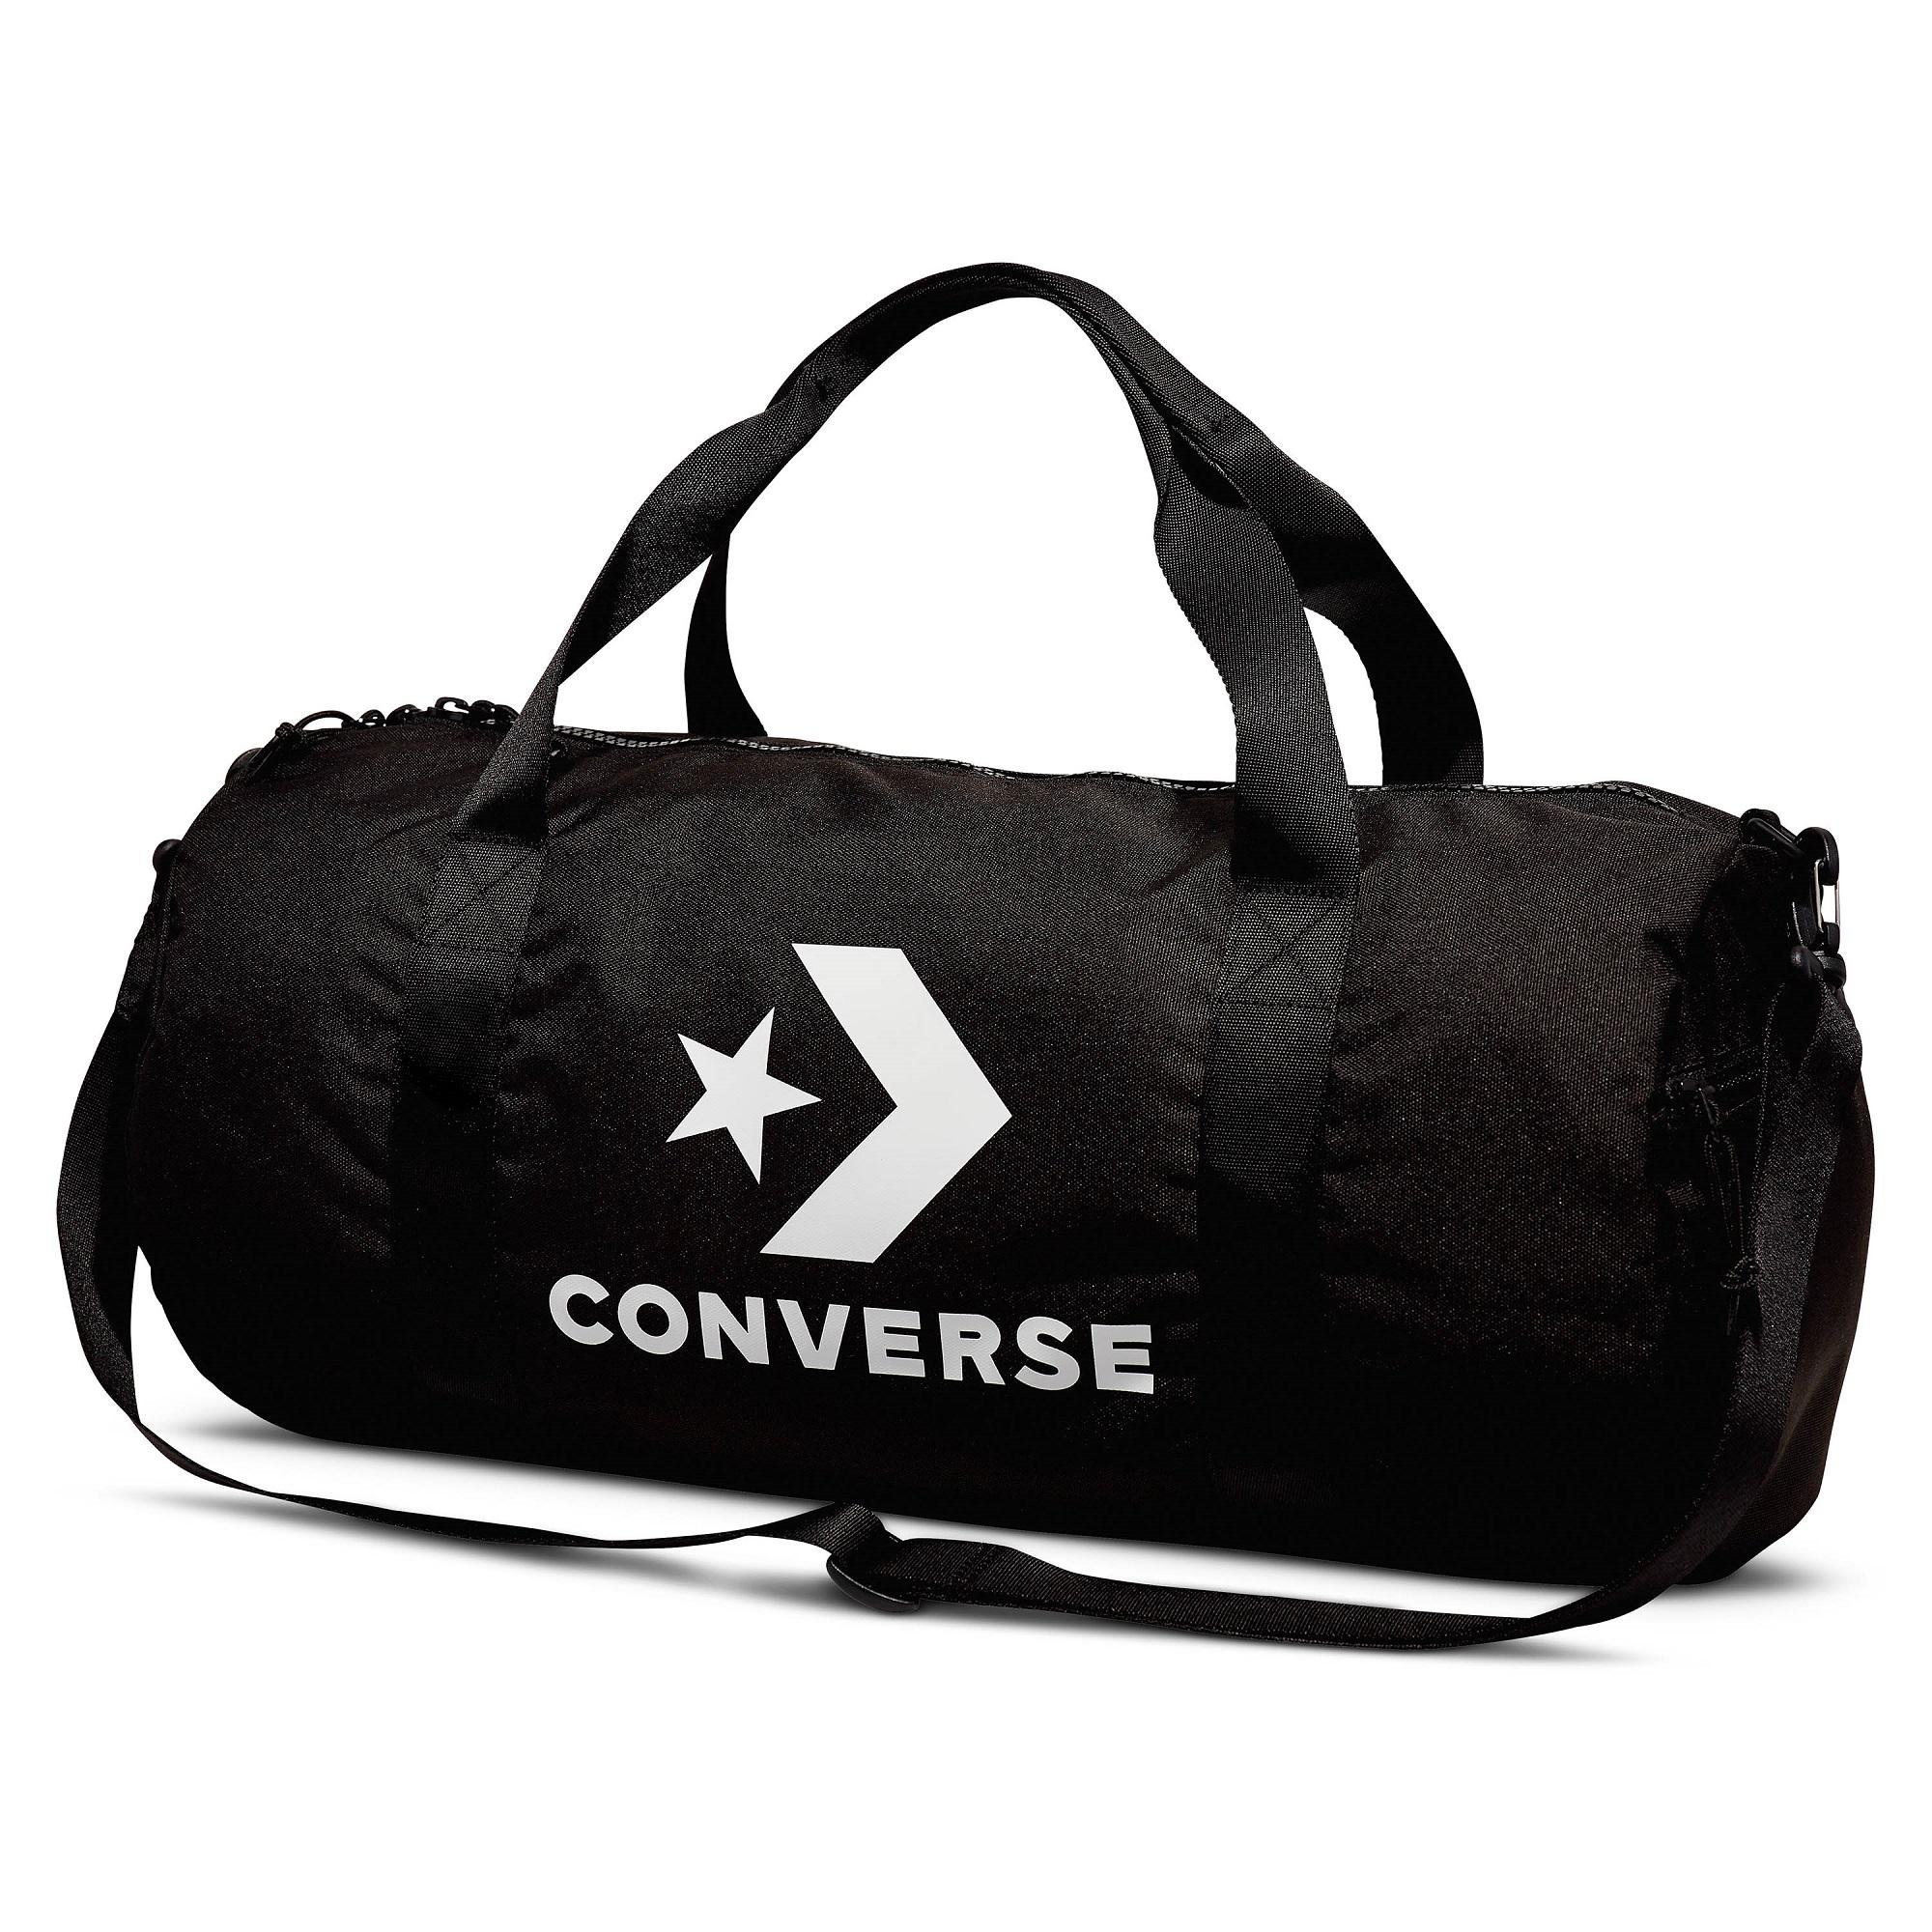 Converse Sport Duffel - Large - Hitam - Con6944-A01 By Converse Official Store.